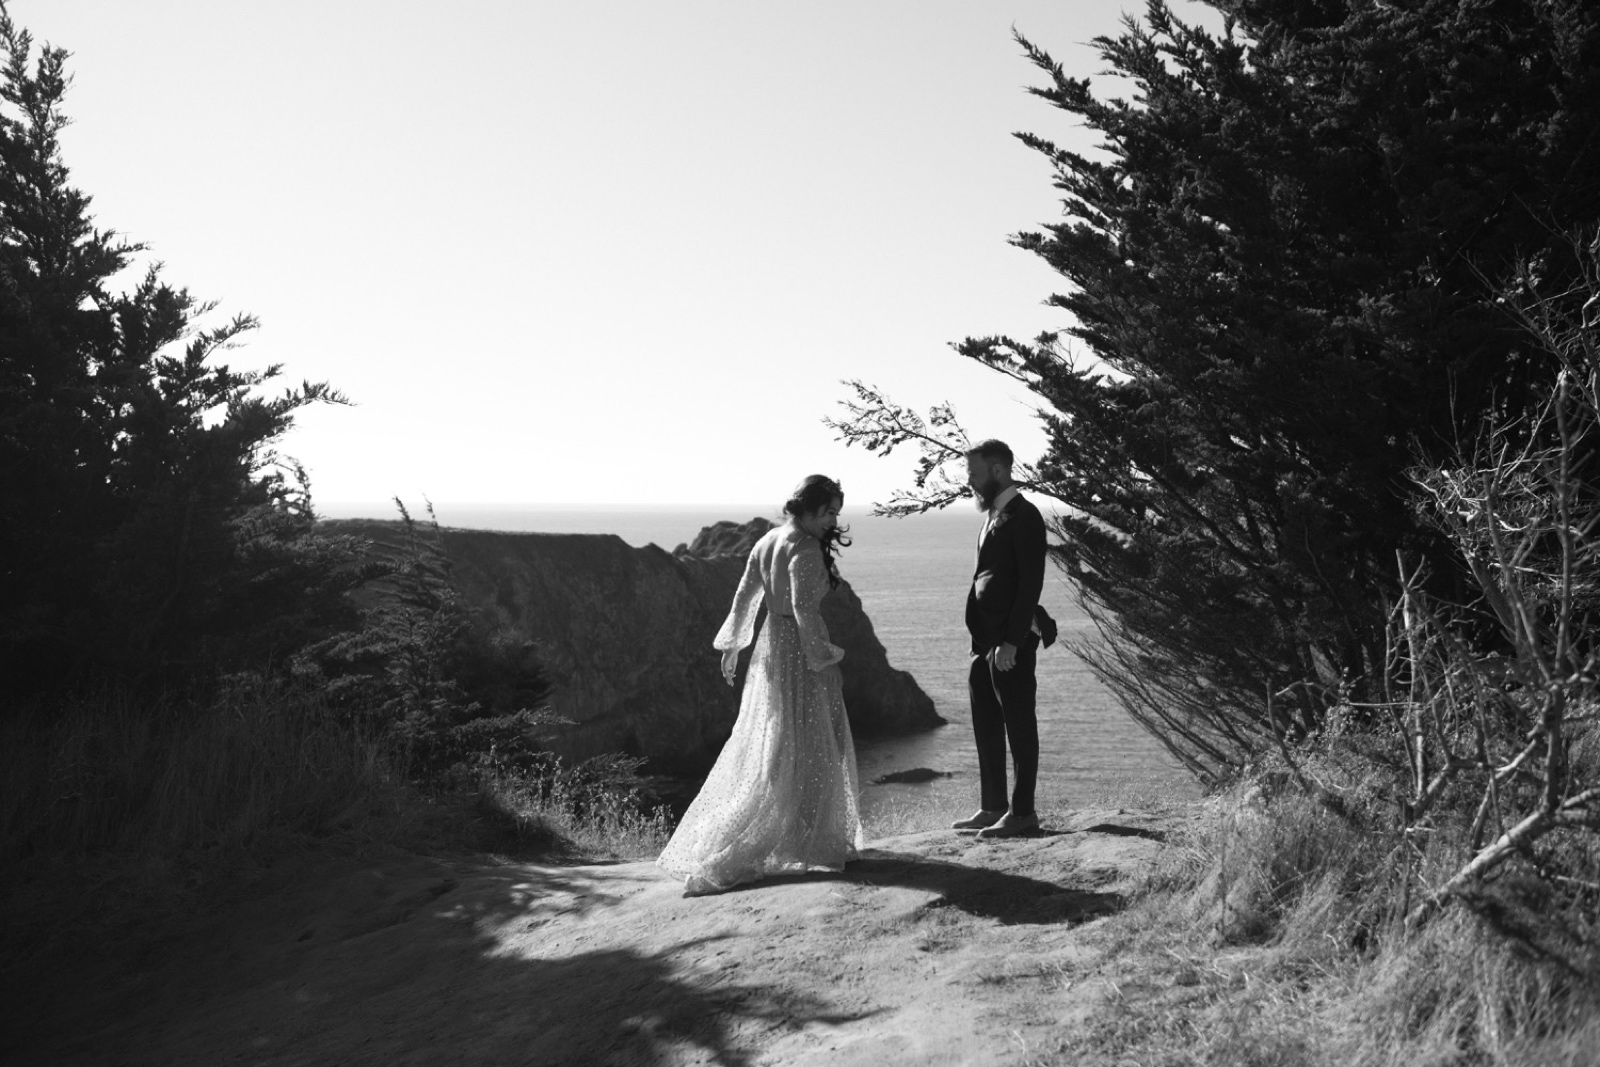 Mendocino_Wedding_Cuffeys_Cove103.JPG